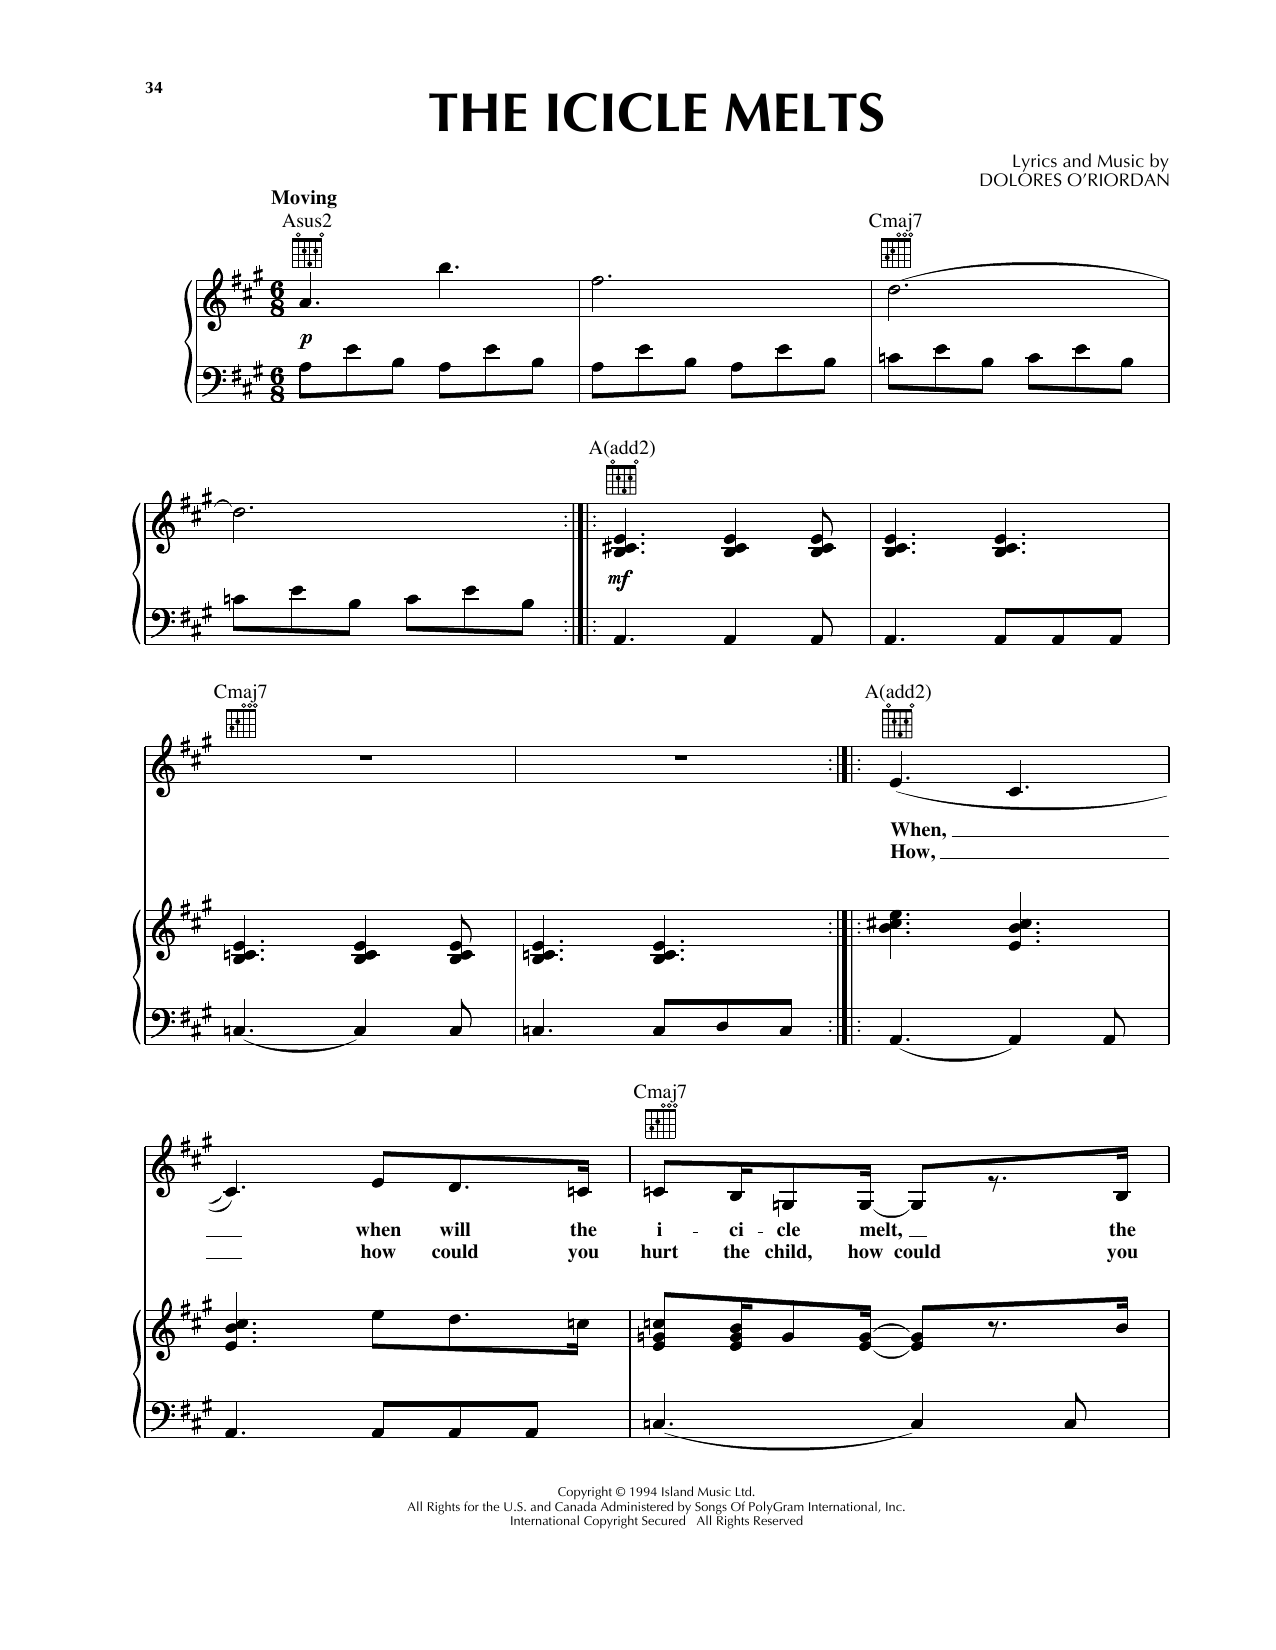 The Icicle Melts Sheet Music